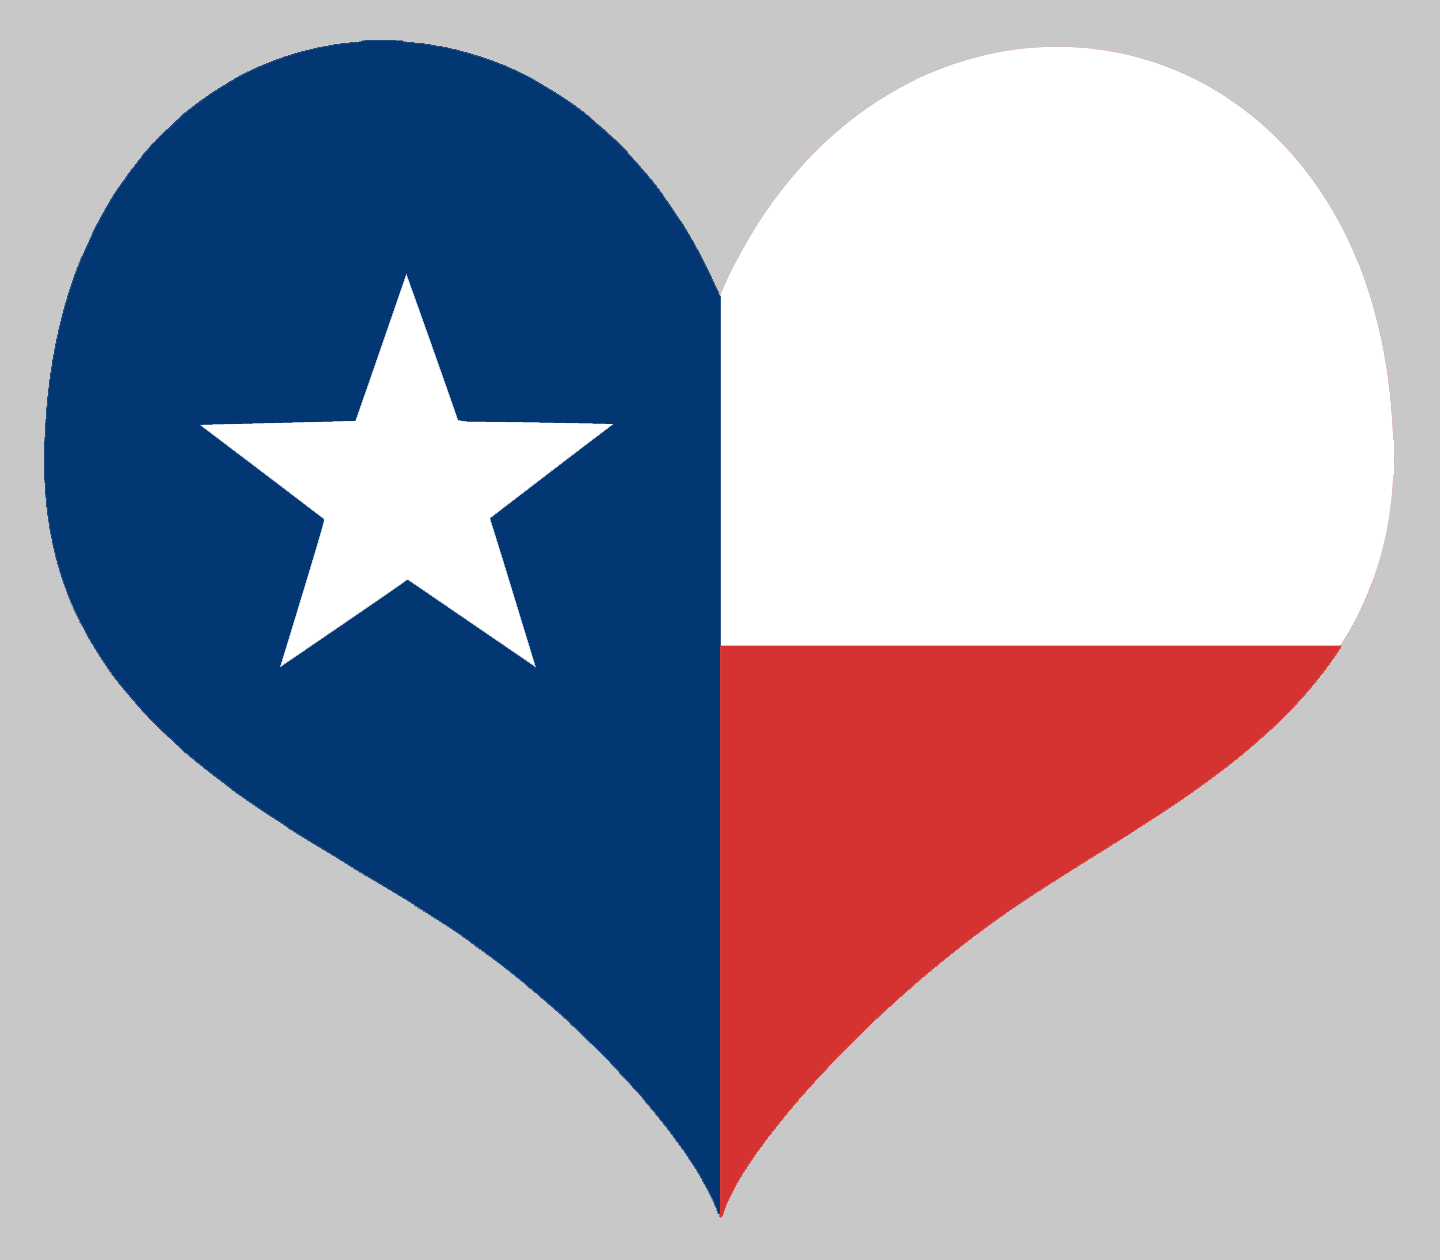 Google Image Result For Http Www Americanmethod Com Assets Images Items Heart Shaped Texas Flag Sticker Png Texas Image Texas Texas Flags